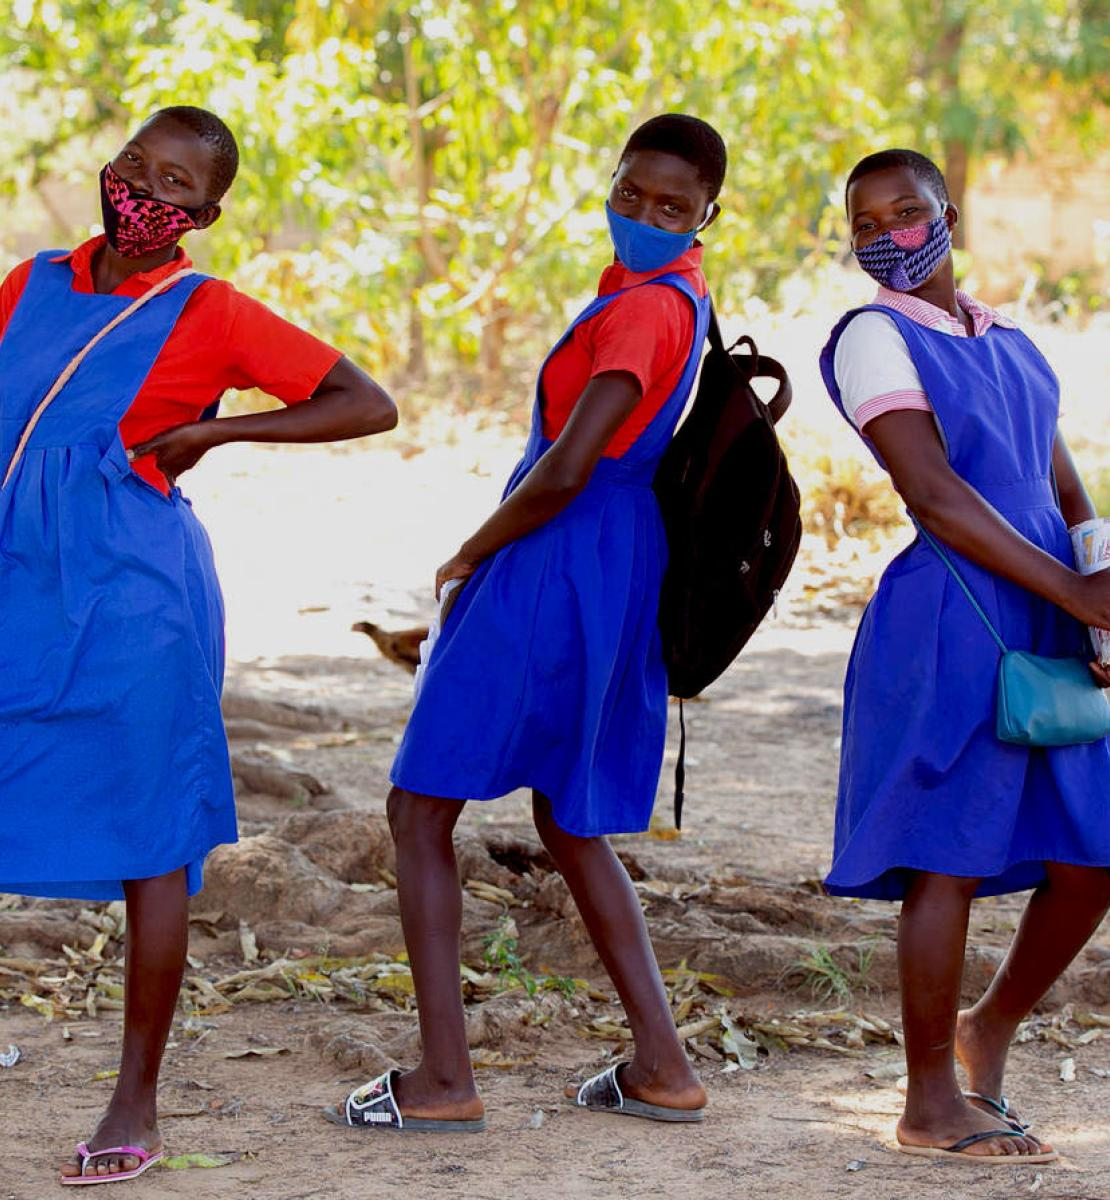 Three school girls having fun within the school campus at Luwambaza primary school